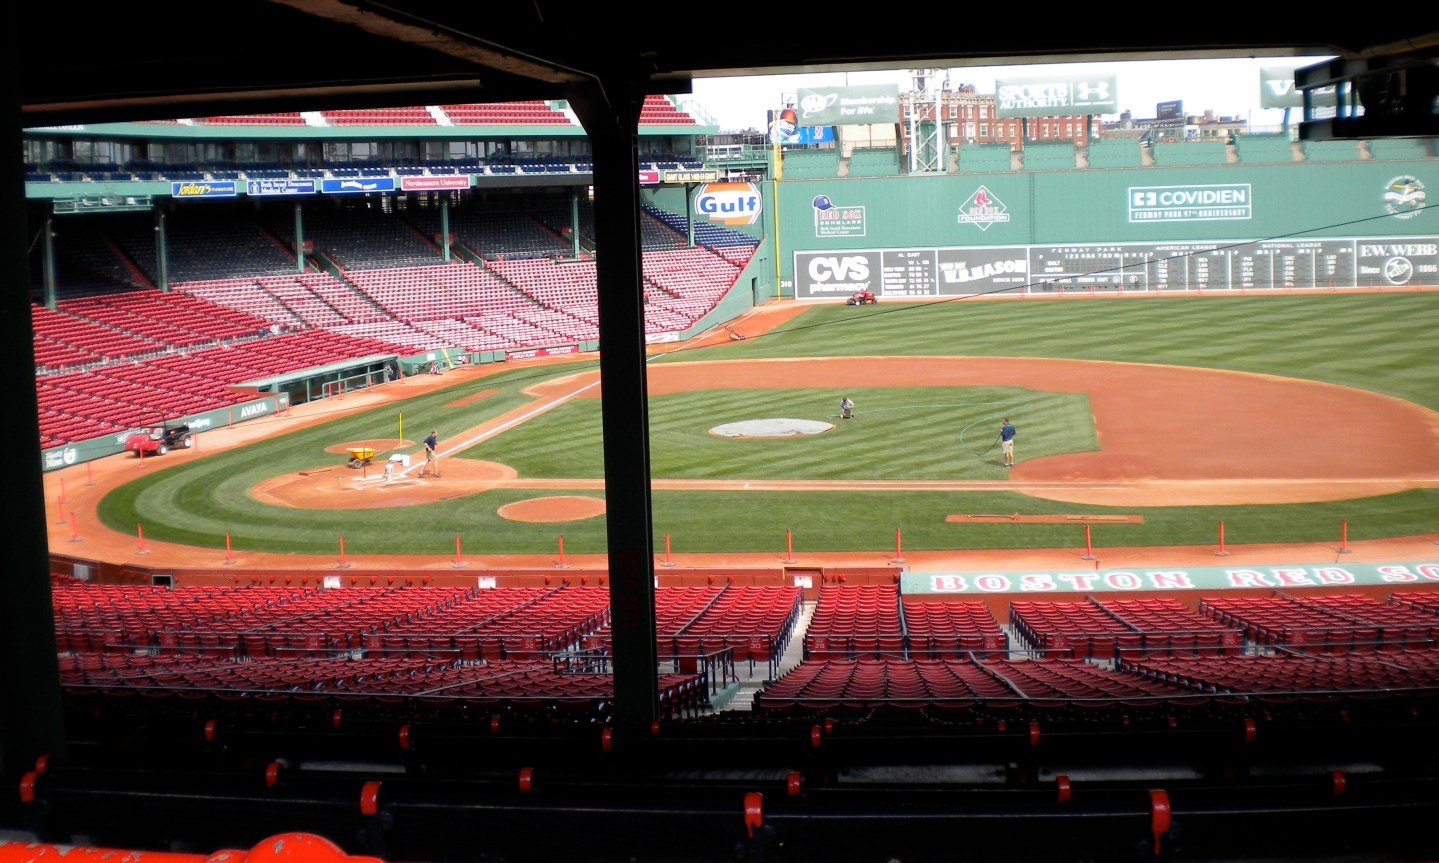 Boston: At the base of the Green Monster